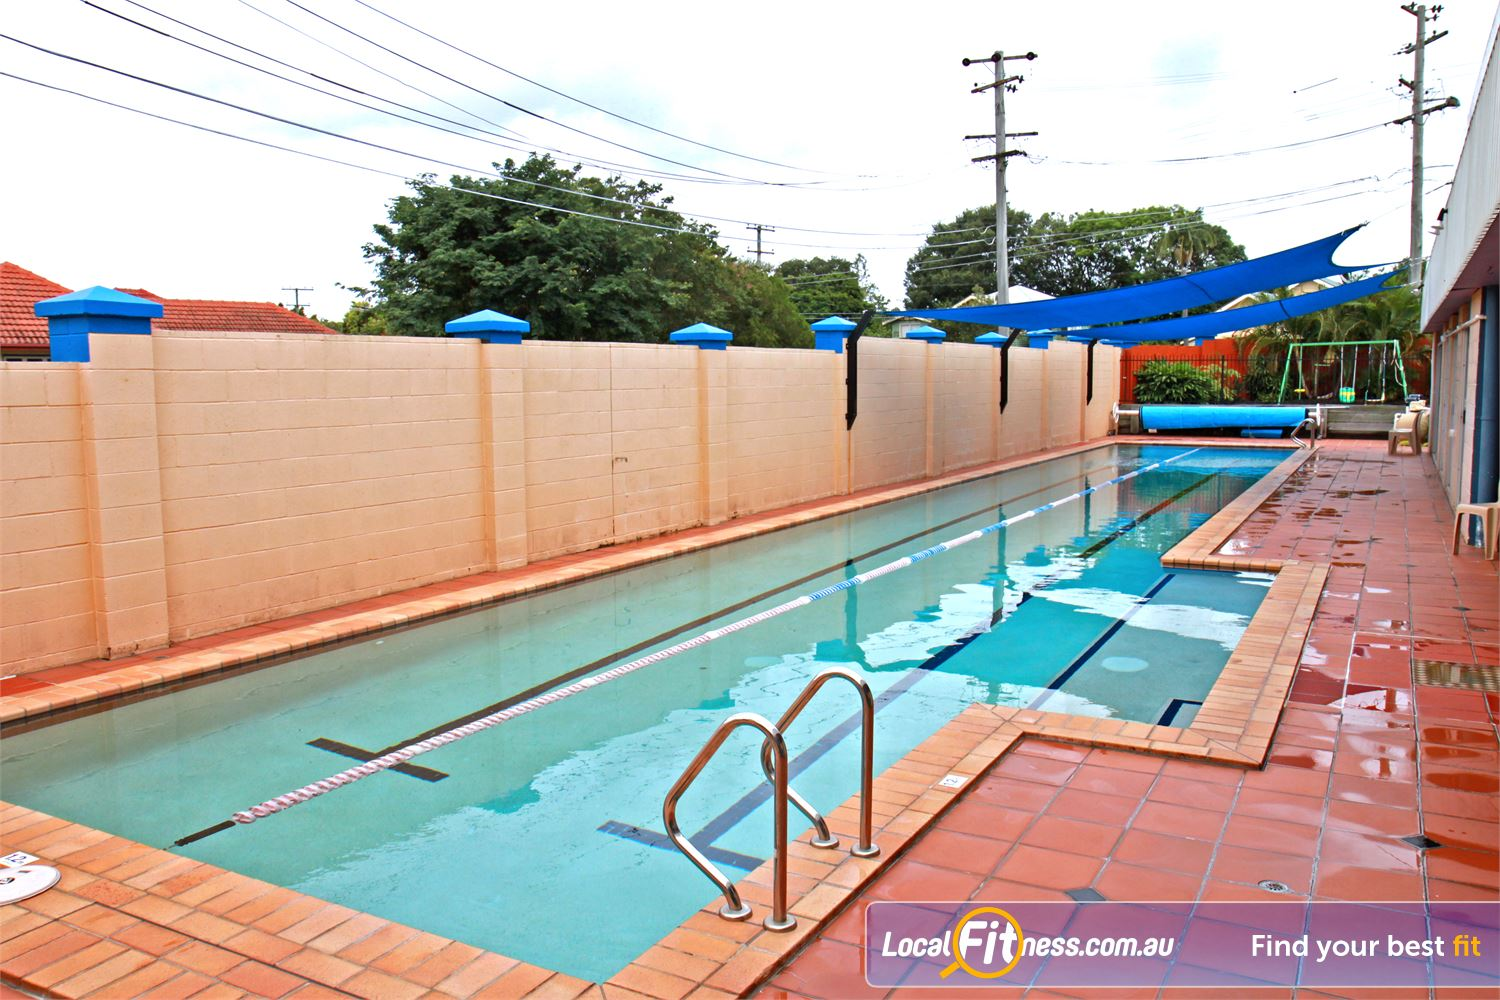 Goodlife Health Clubs Near Balmoral The Morningside swimming pool provides 2 lanes, perfect for lap swimming.